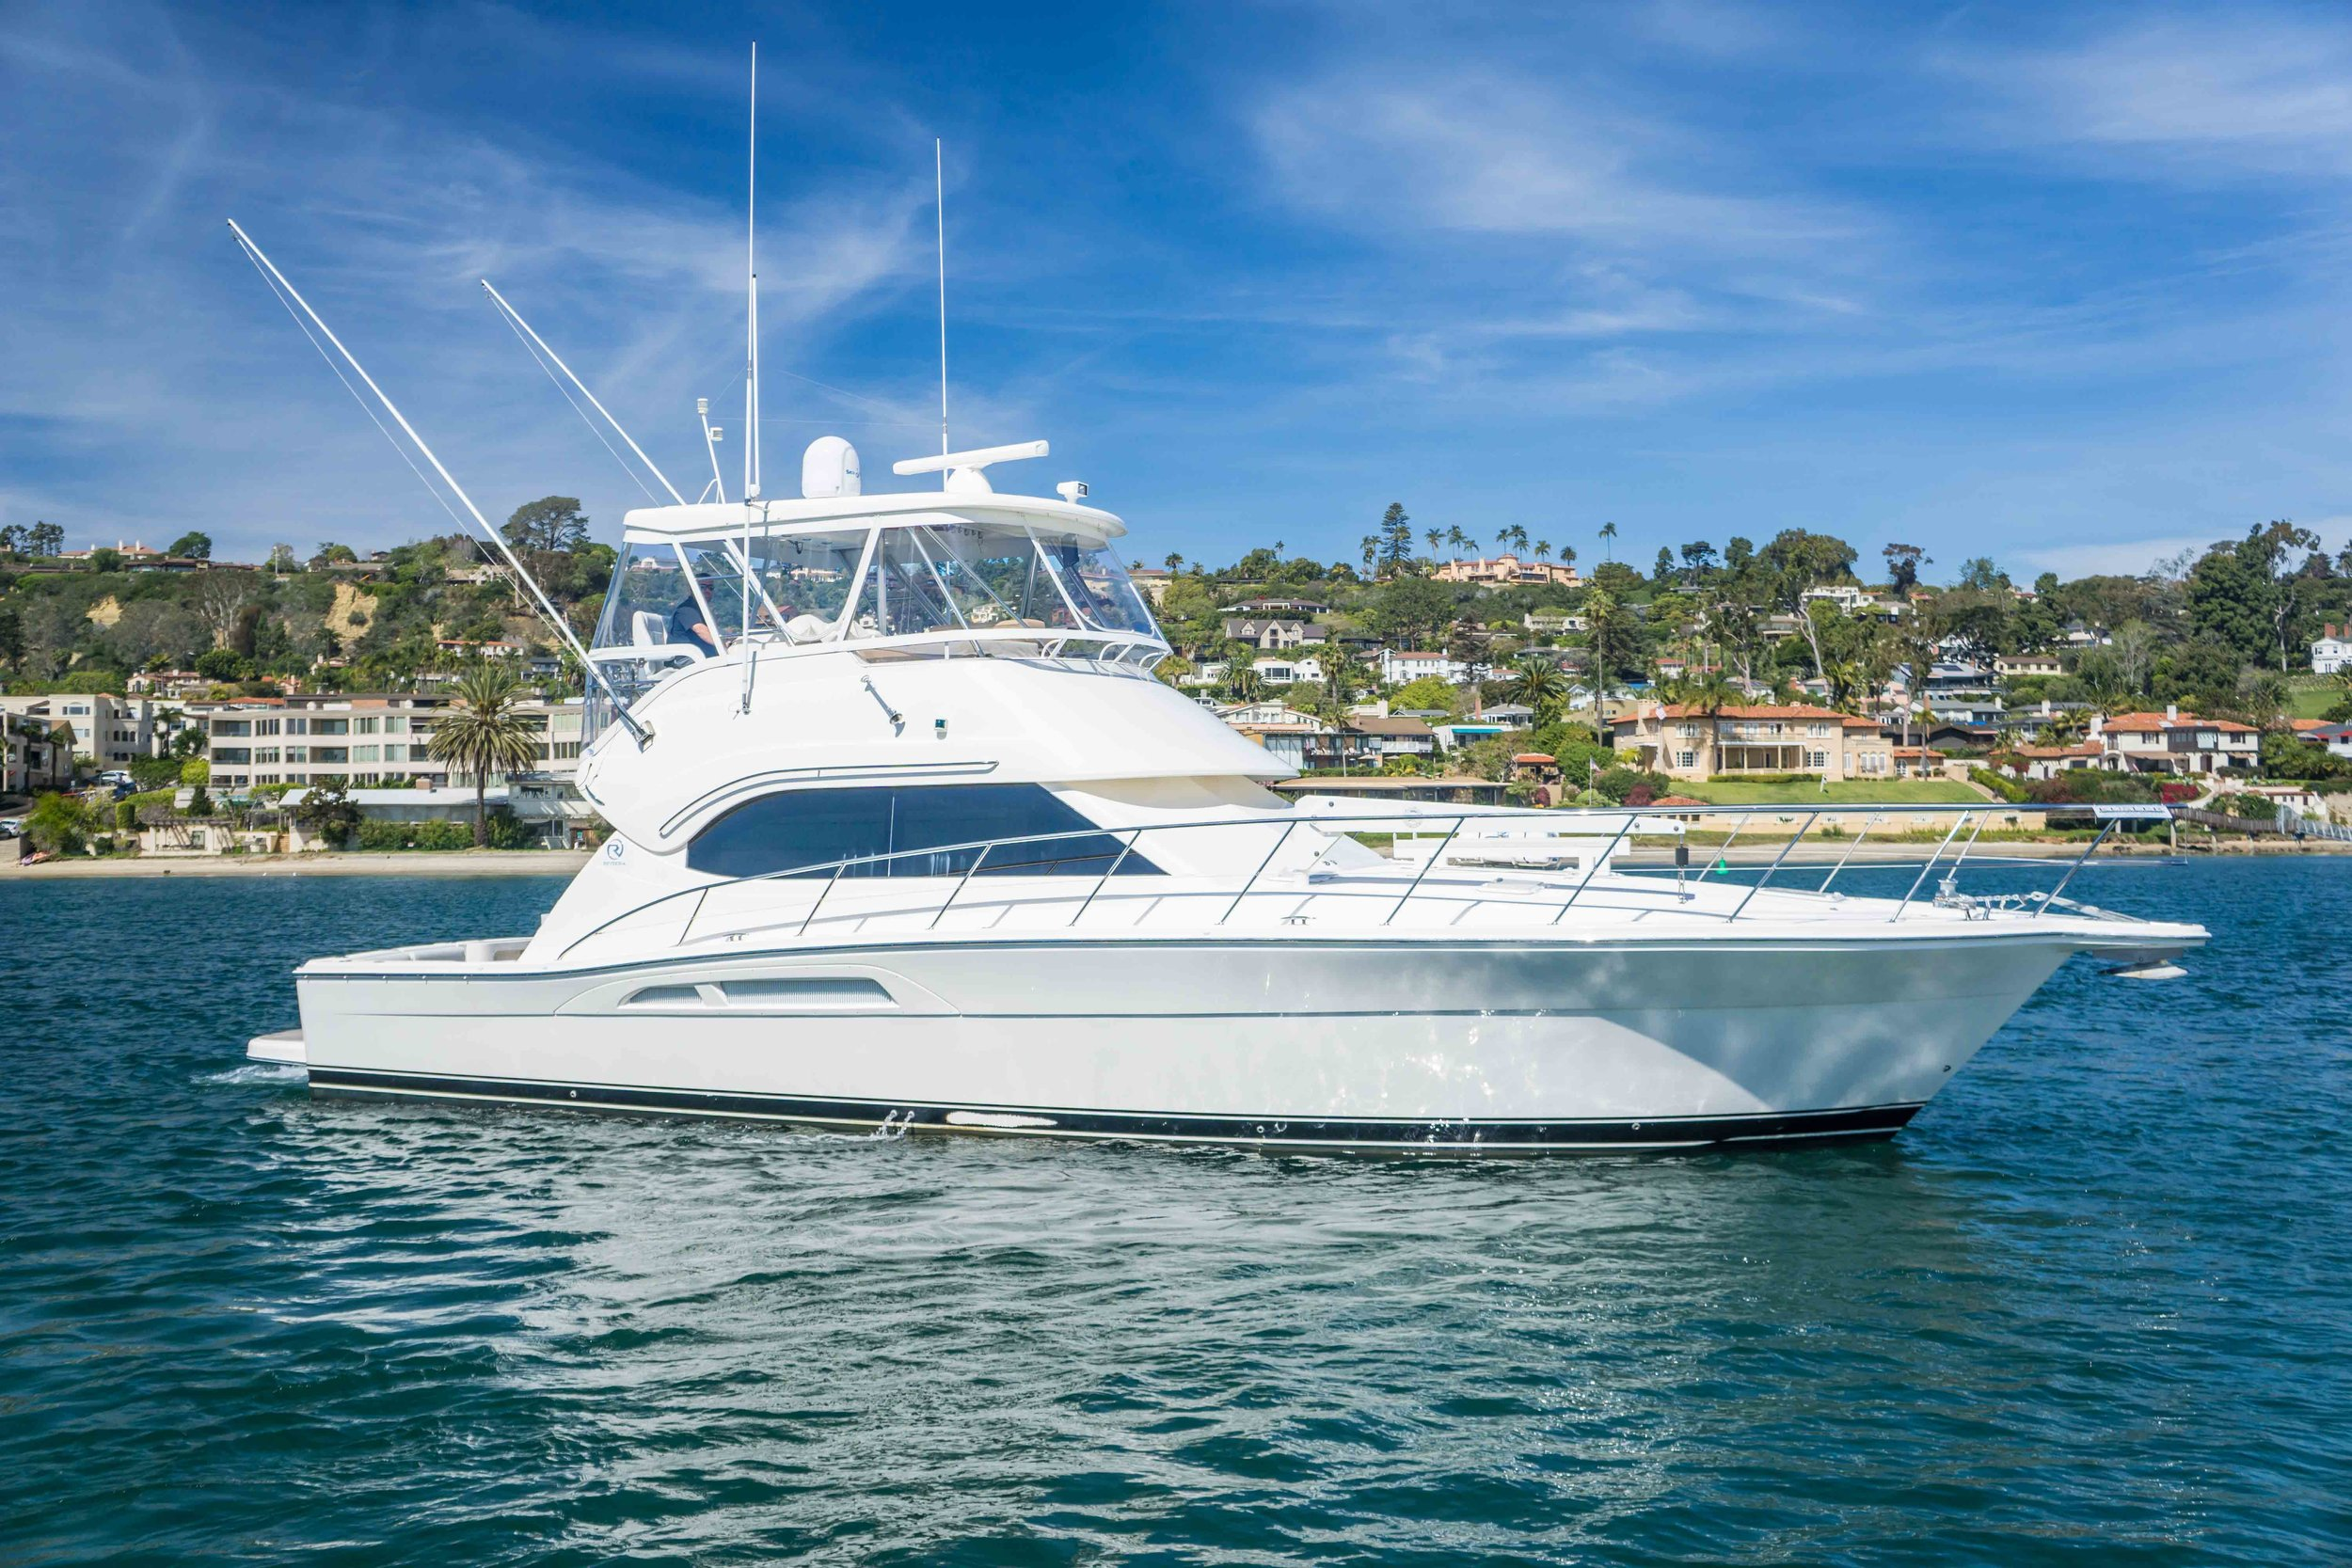 Kusler Yachts San Diego Sport Fishing Boats Amp Luxury Yachts For Sale